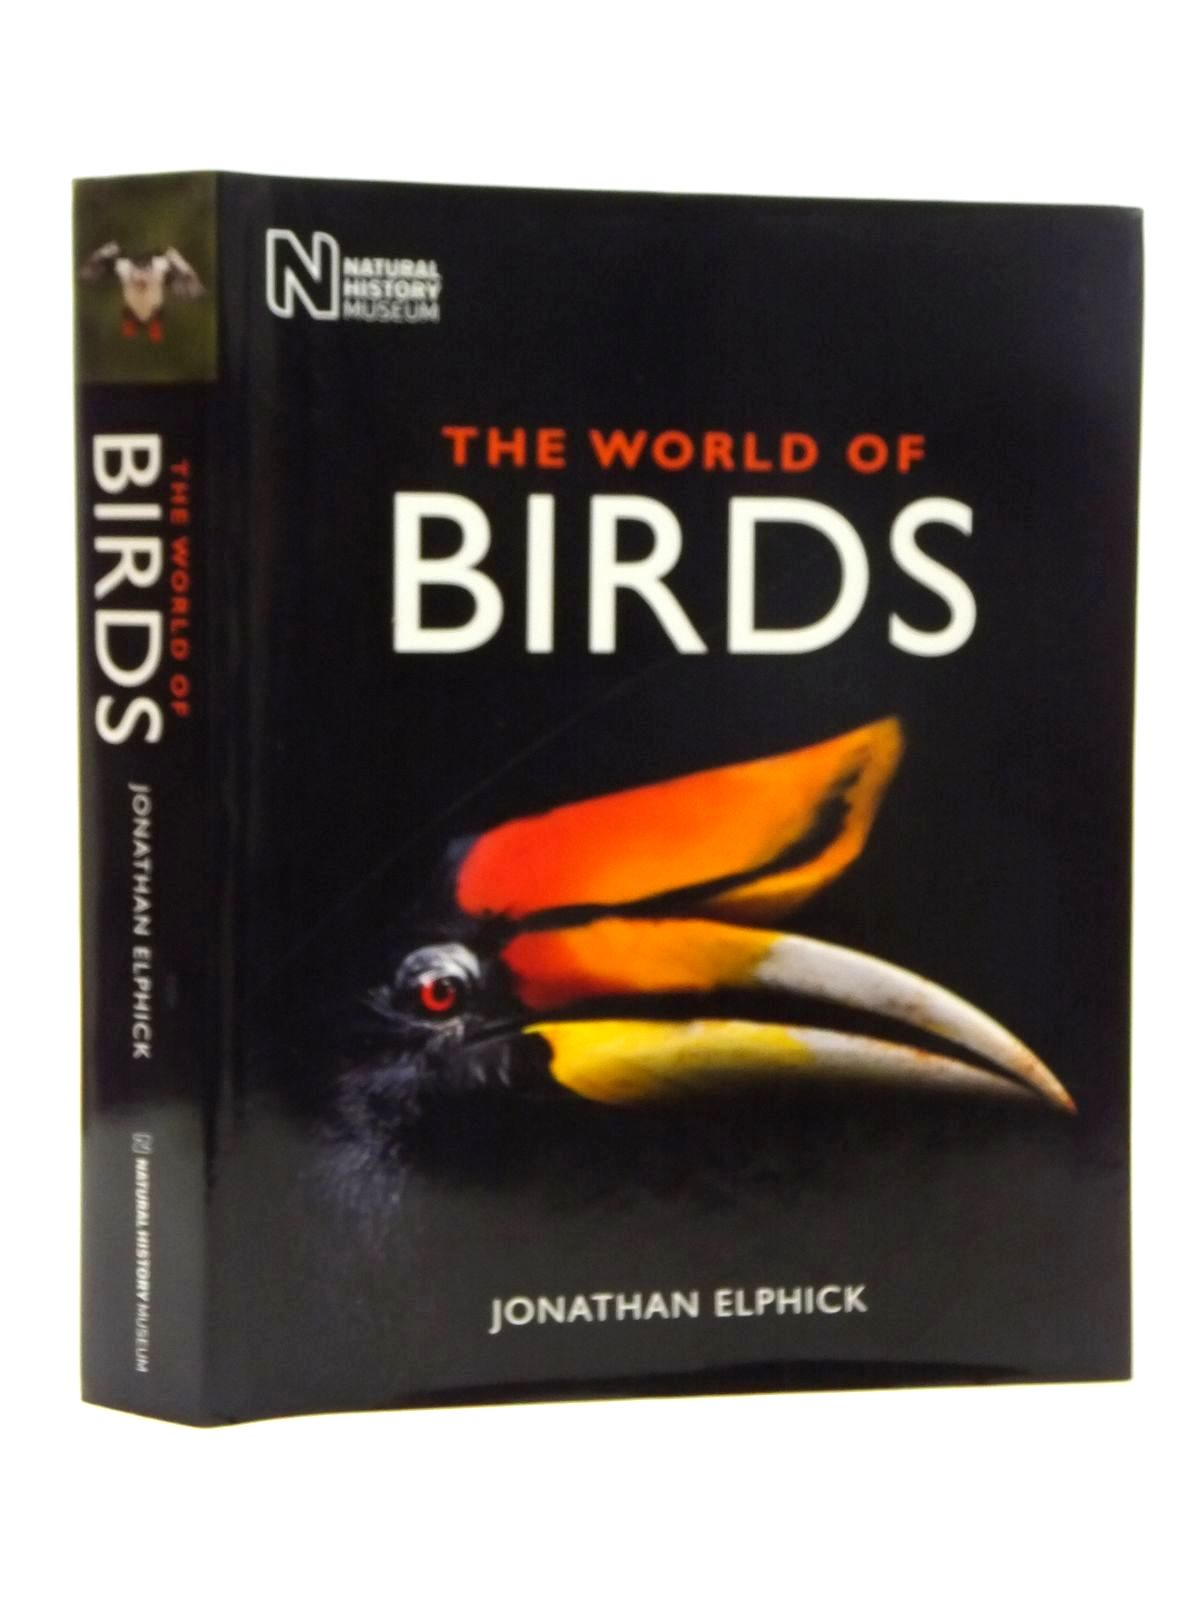 Photo of THE WORLD OF BIRDS written by Elphick, Jonathan published by Natural History Museum (STOCK CODE: 1814909)  for sale by Stella & Rose's Books